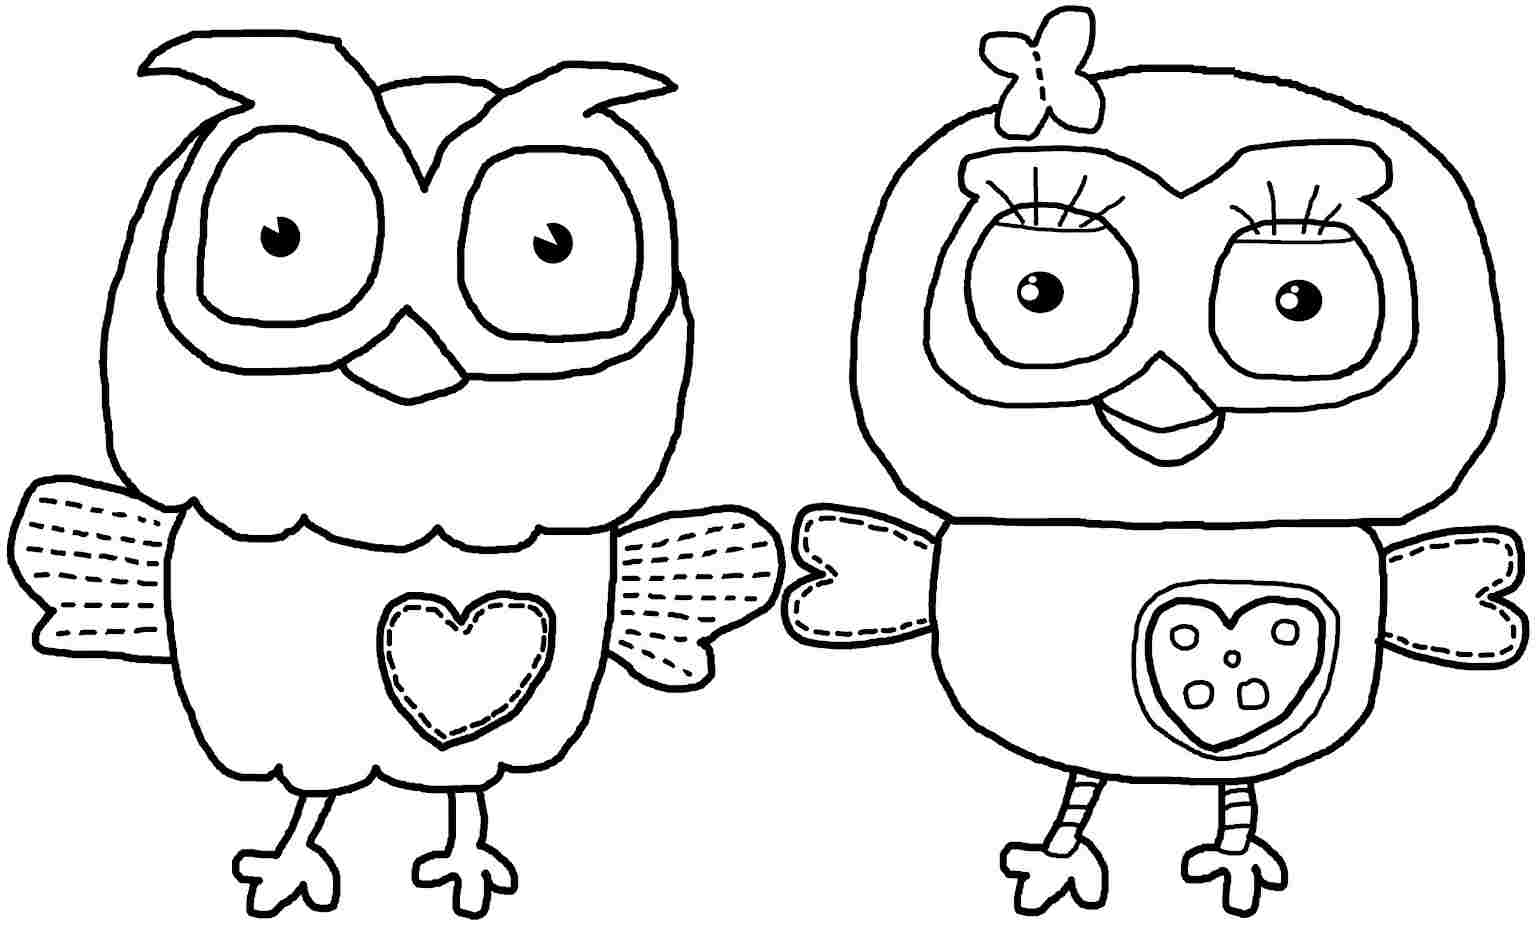 Coloring Pages Printable Coloring Pages Of Owls cute owl coloring pages az hard great horned owl